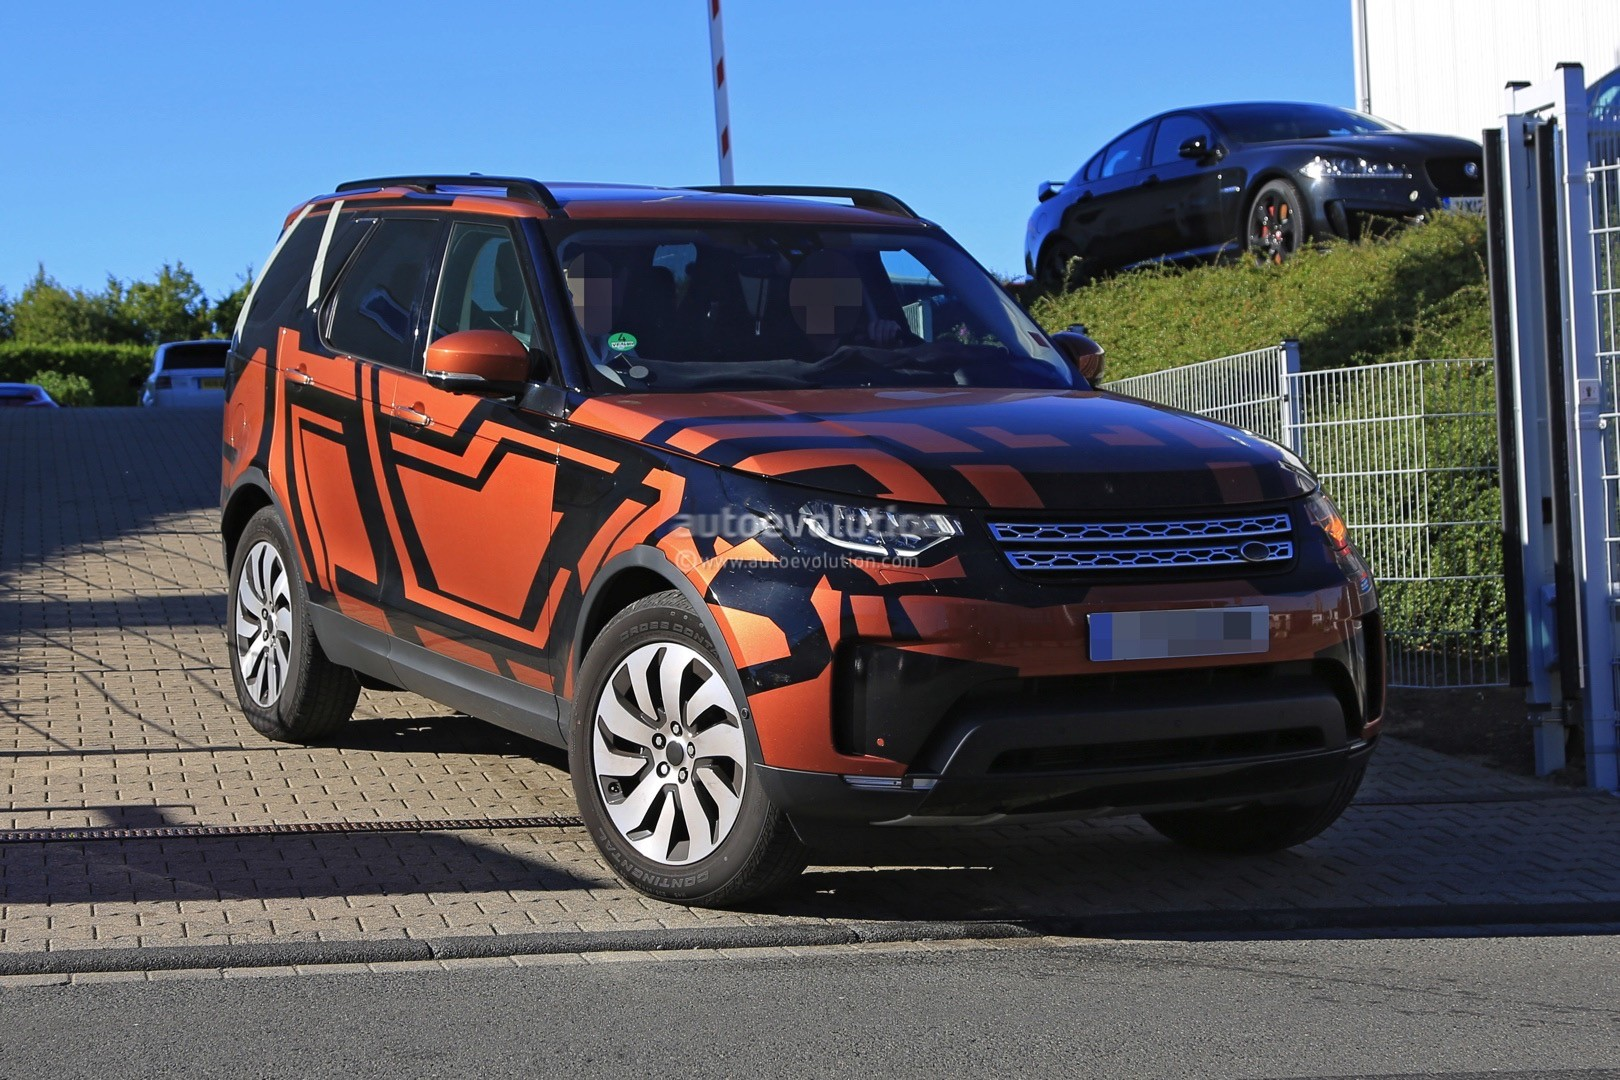 2017 land rover discovery 5 2018 land rover lr5 spied reveals more skin autoevolution. Black Bedroom Furniture Sets. Home Design Ideas